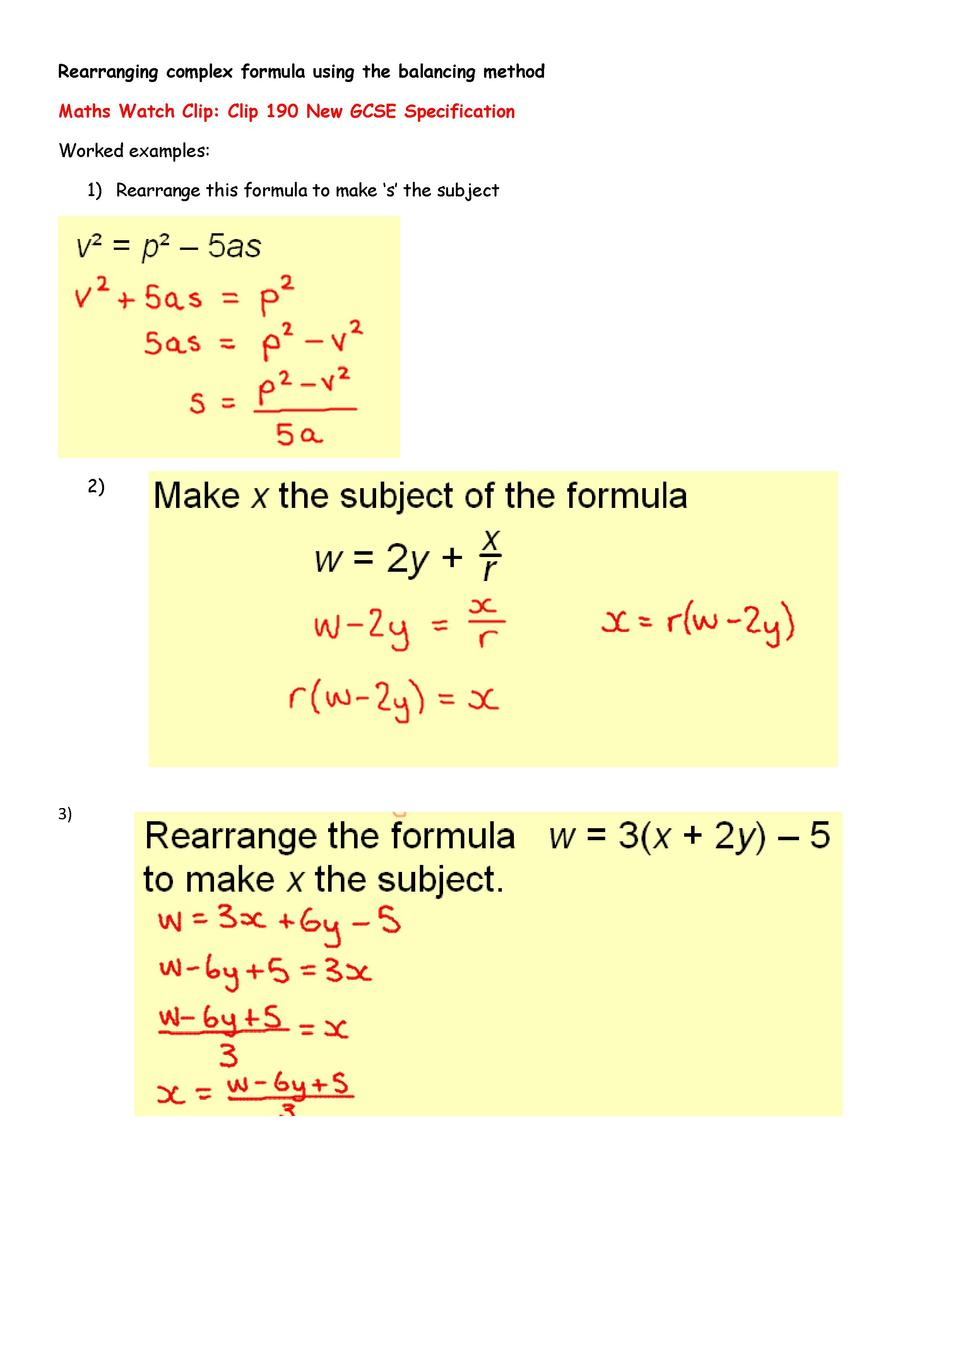 worksheet Rearranging Equations Worksheet maths algebra worksheet simplebooklet com rearranging complex formula using the balancing method watch clip 190 new gcse specification worked